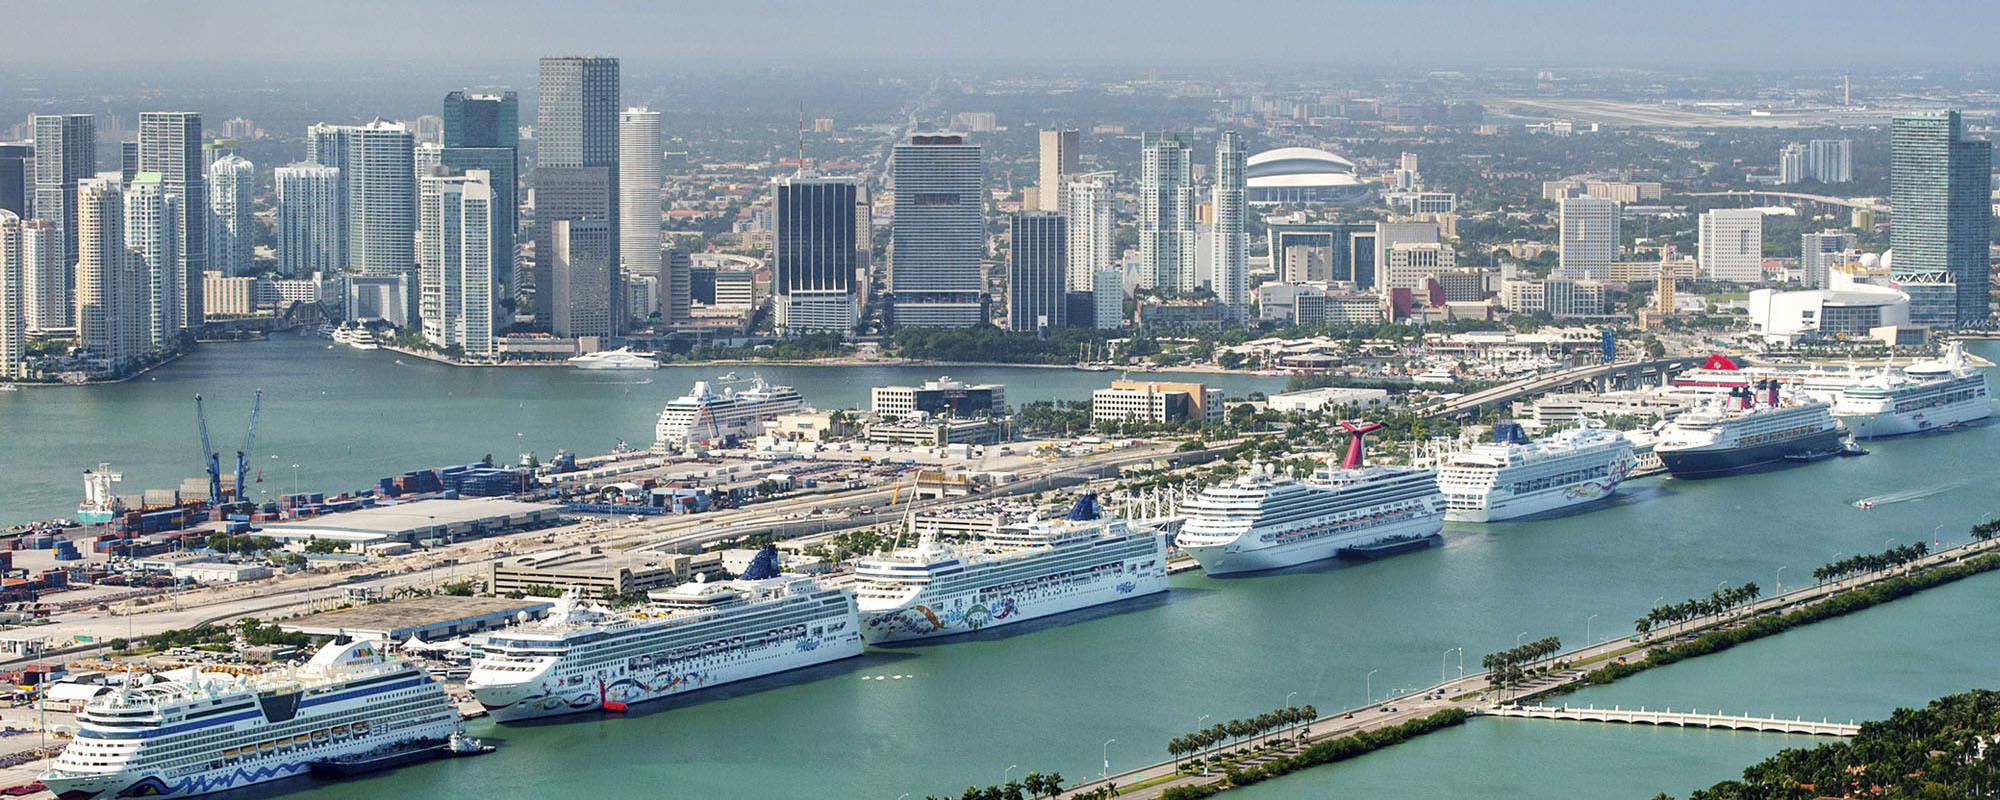 The Resilient305 project in Miami